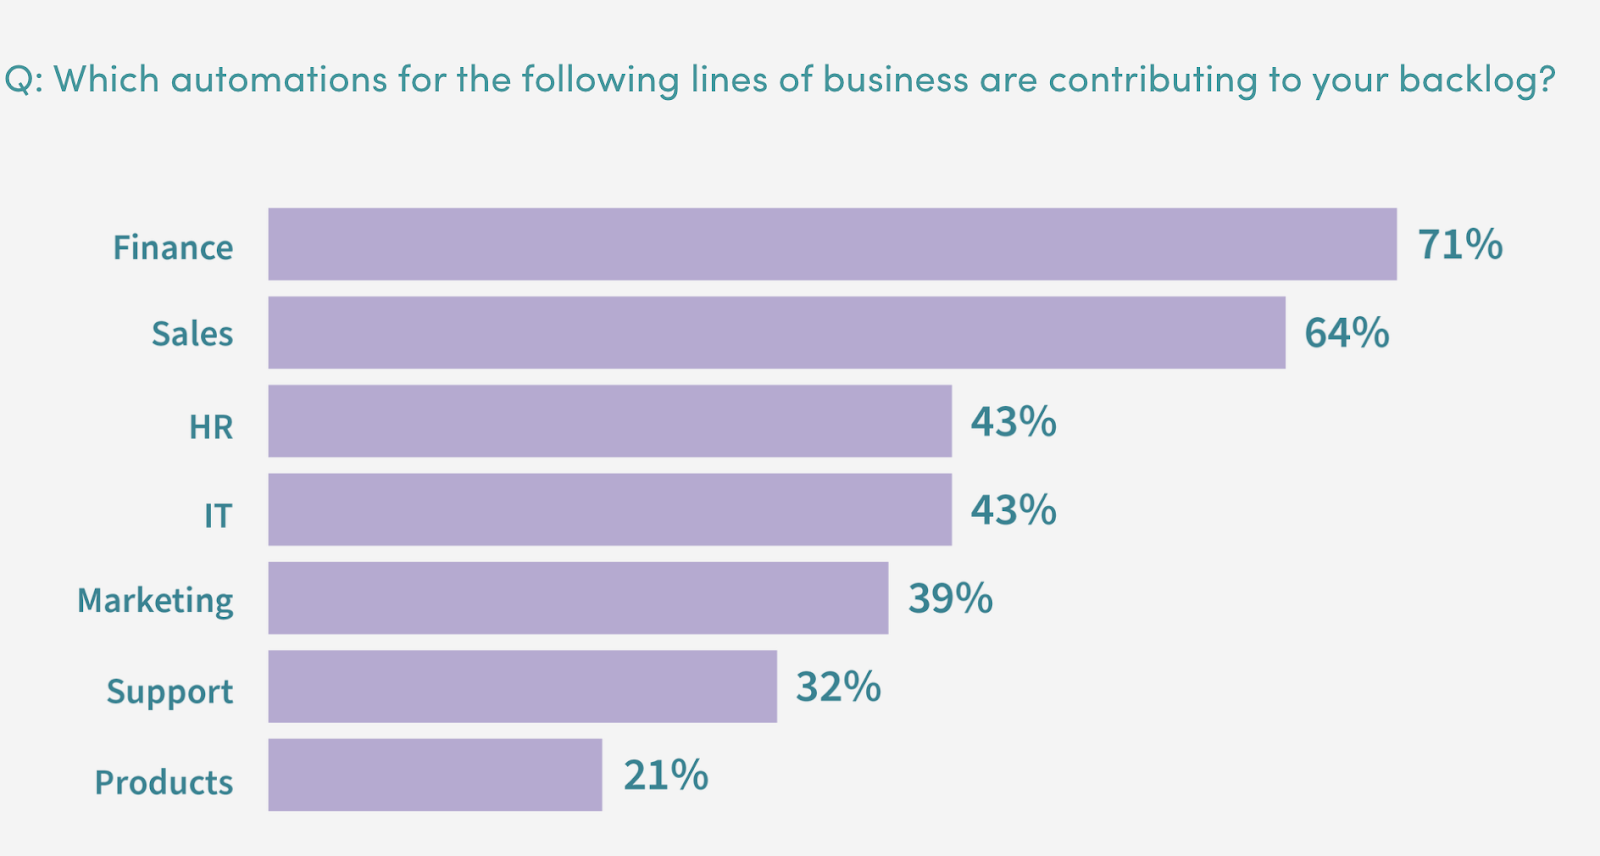 A bar chart that shows which departments are contributing to BT's backlog in building automations.